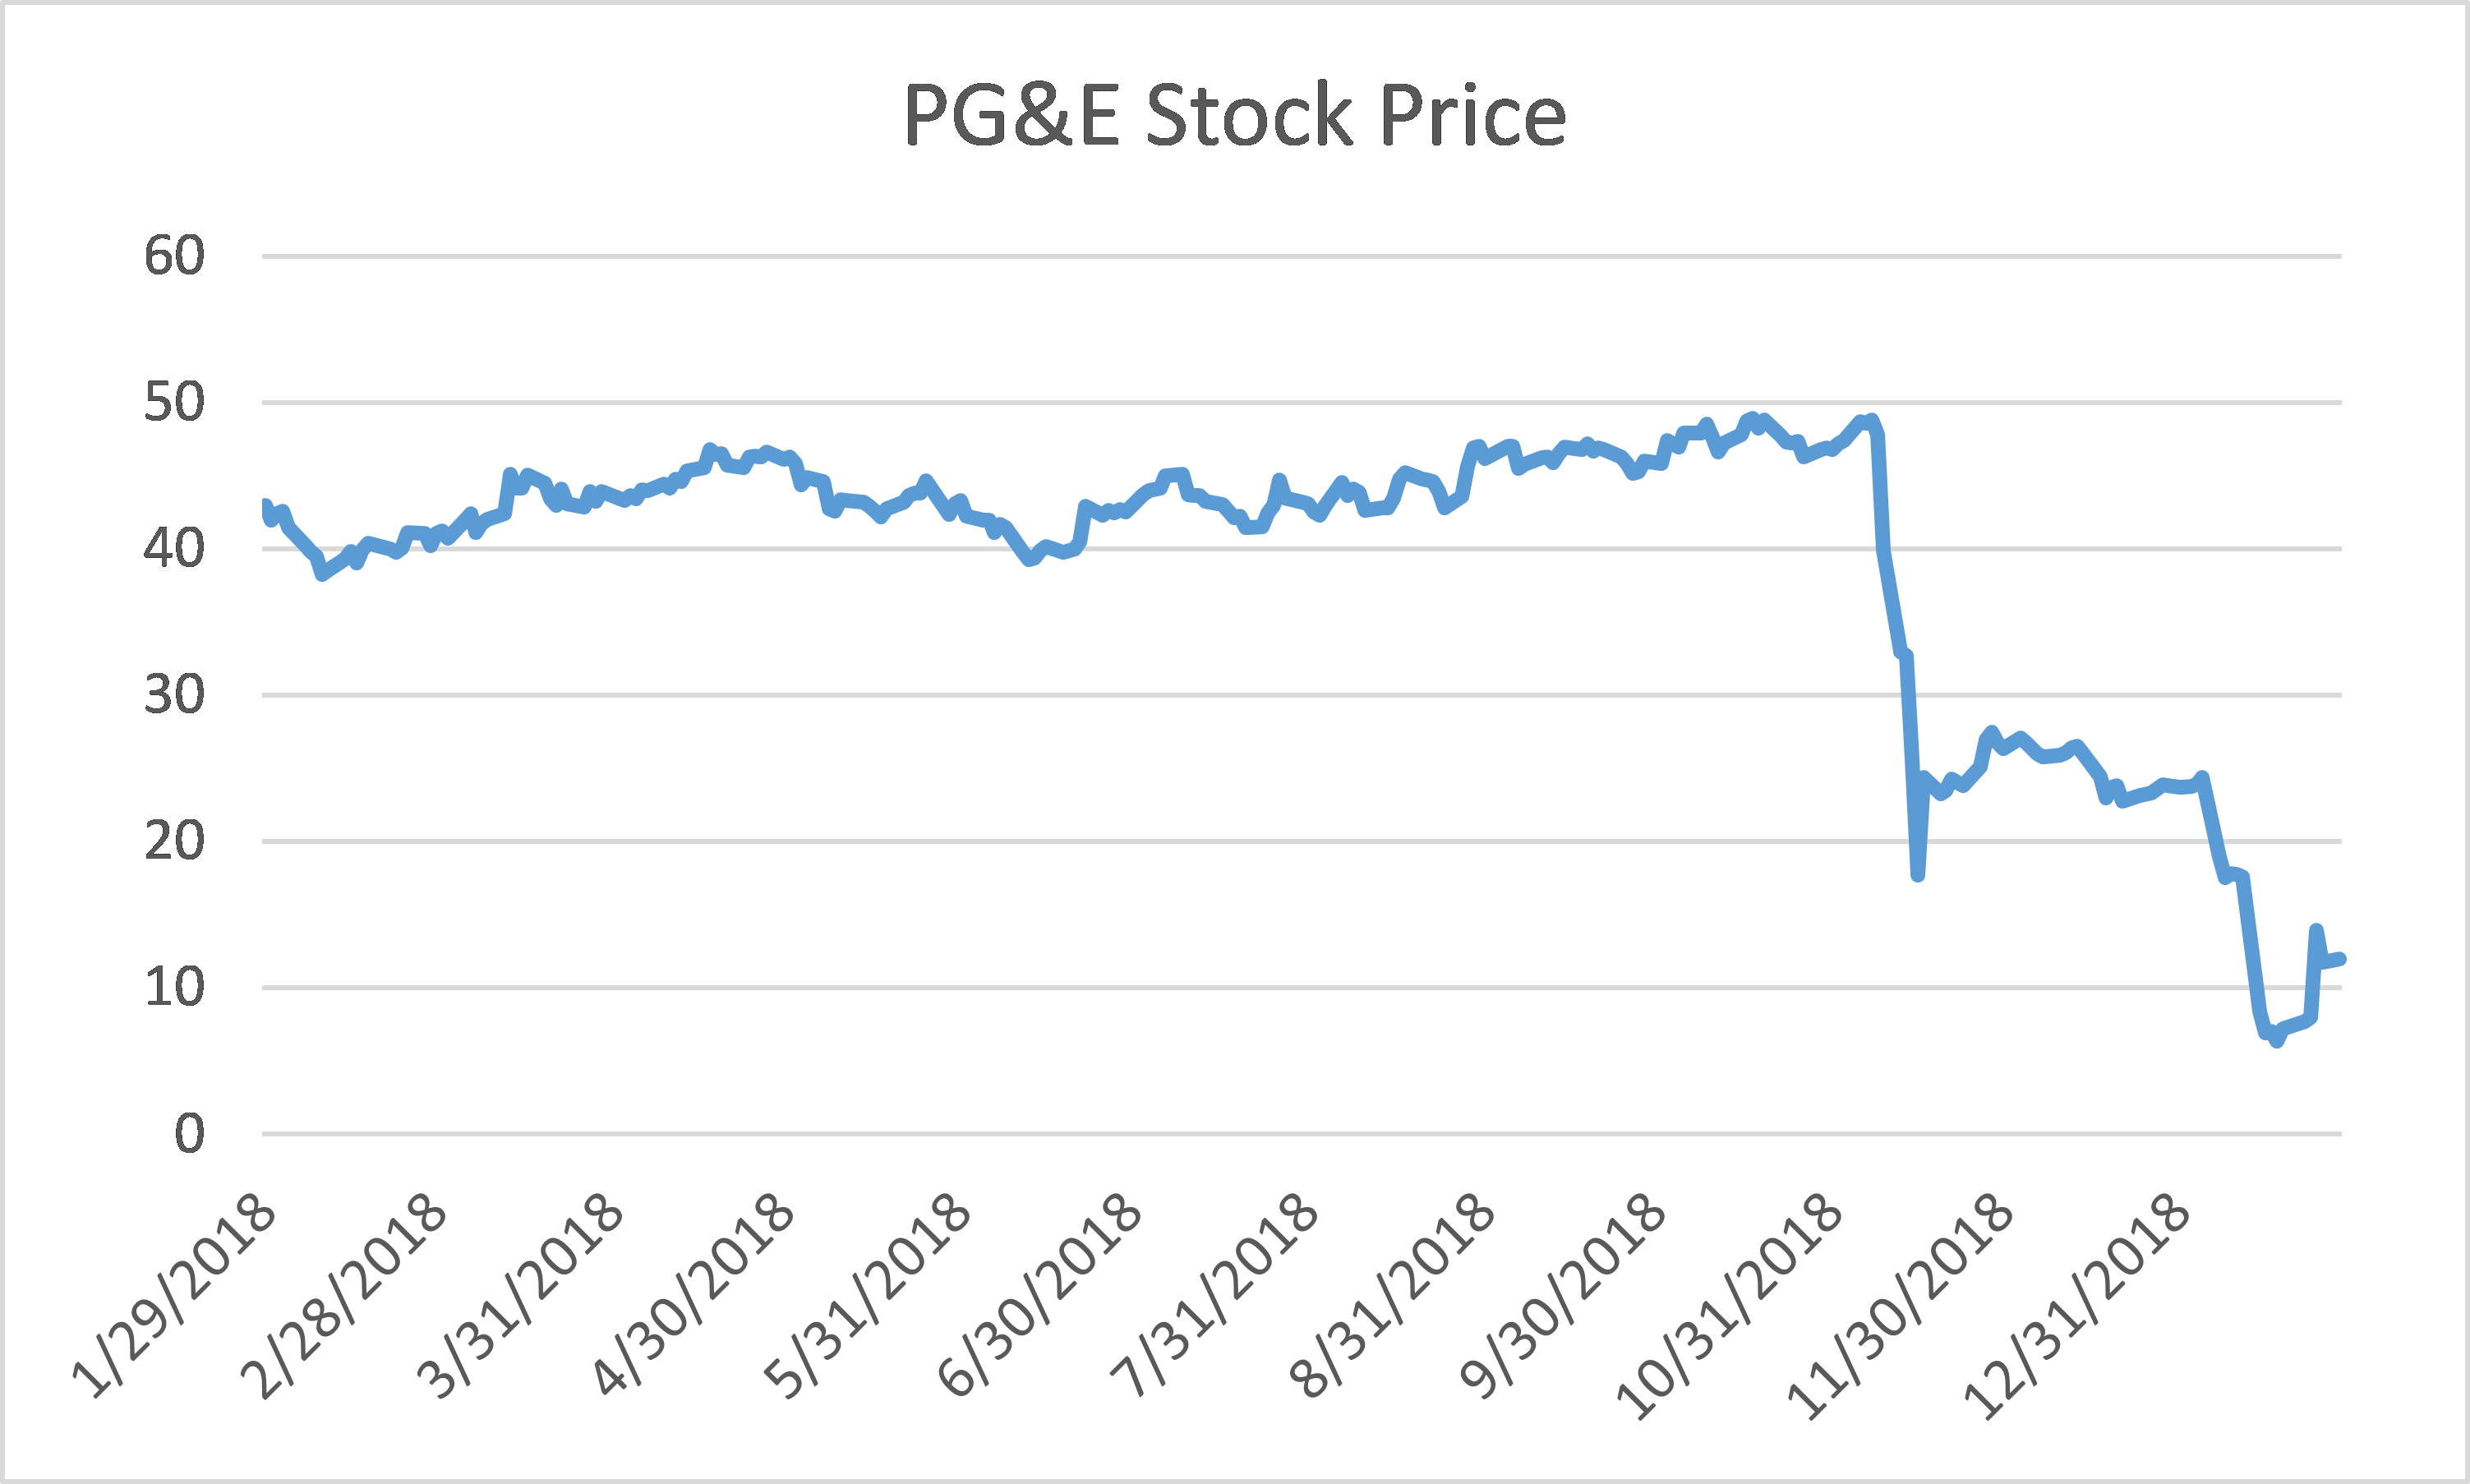 PG&E stock price from January to December 2018